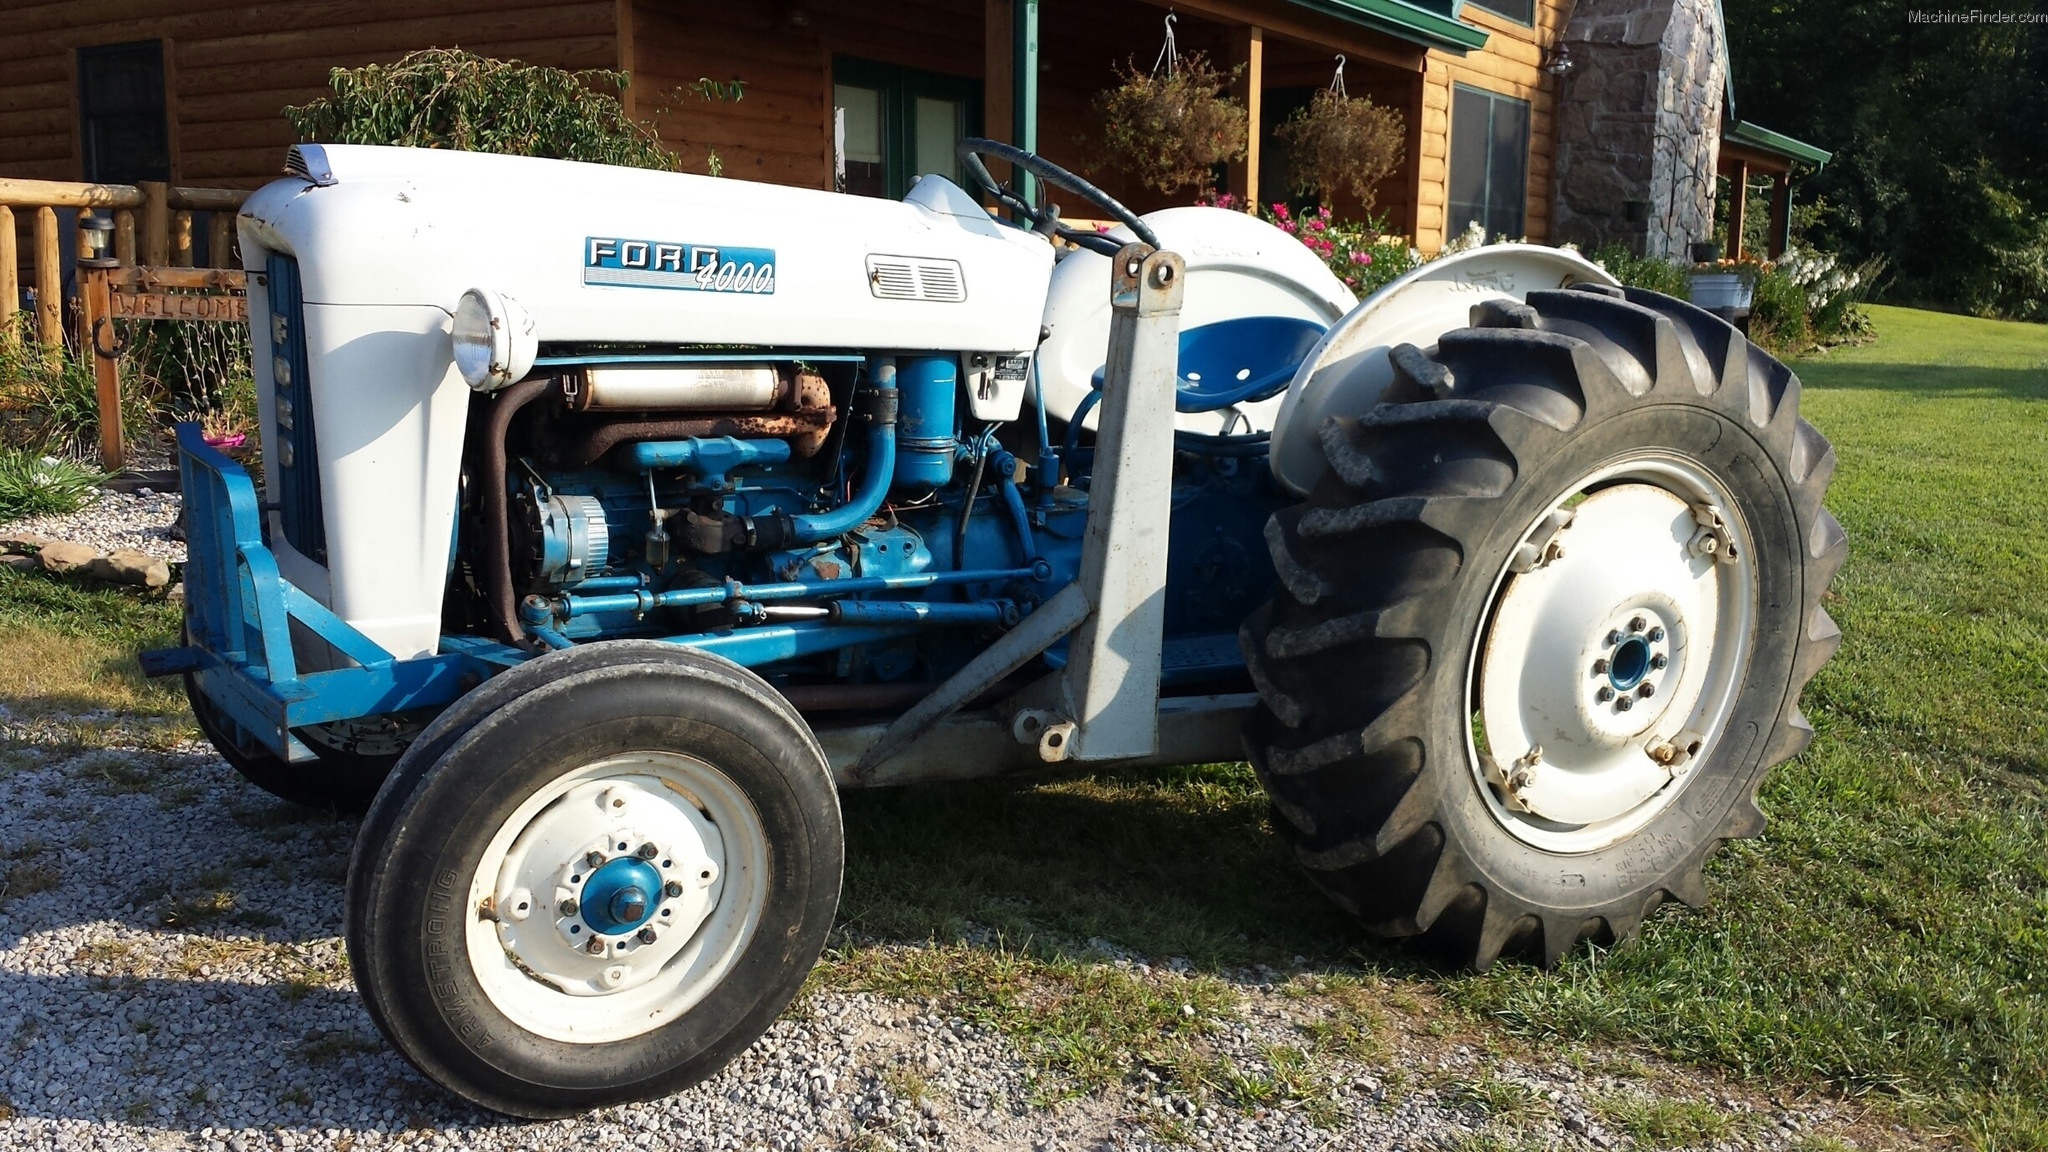 Ford Tractor Pto No 1962 : Ford tractors utility hp john deere